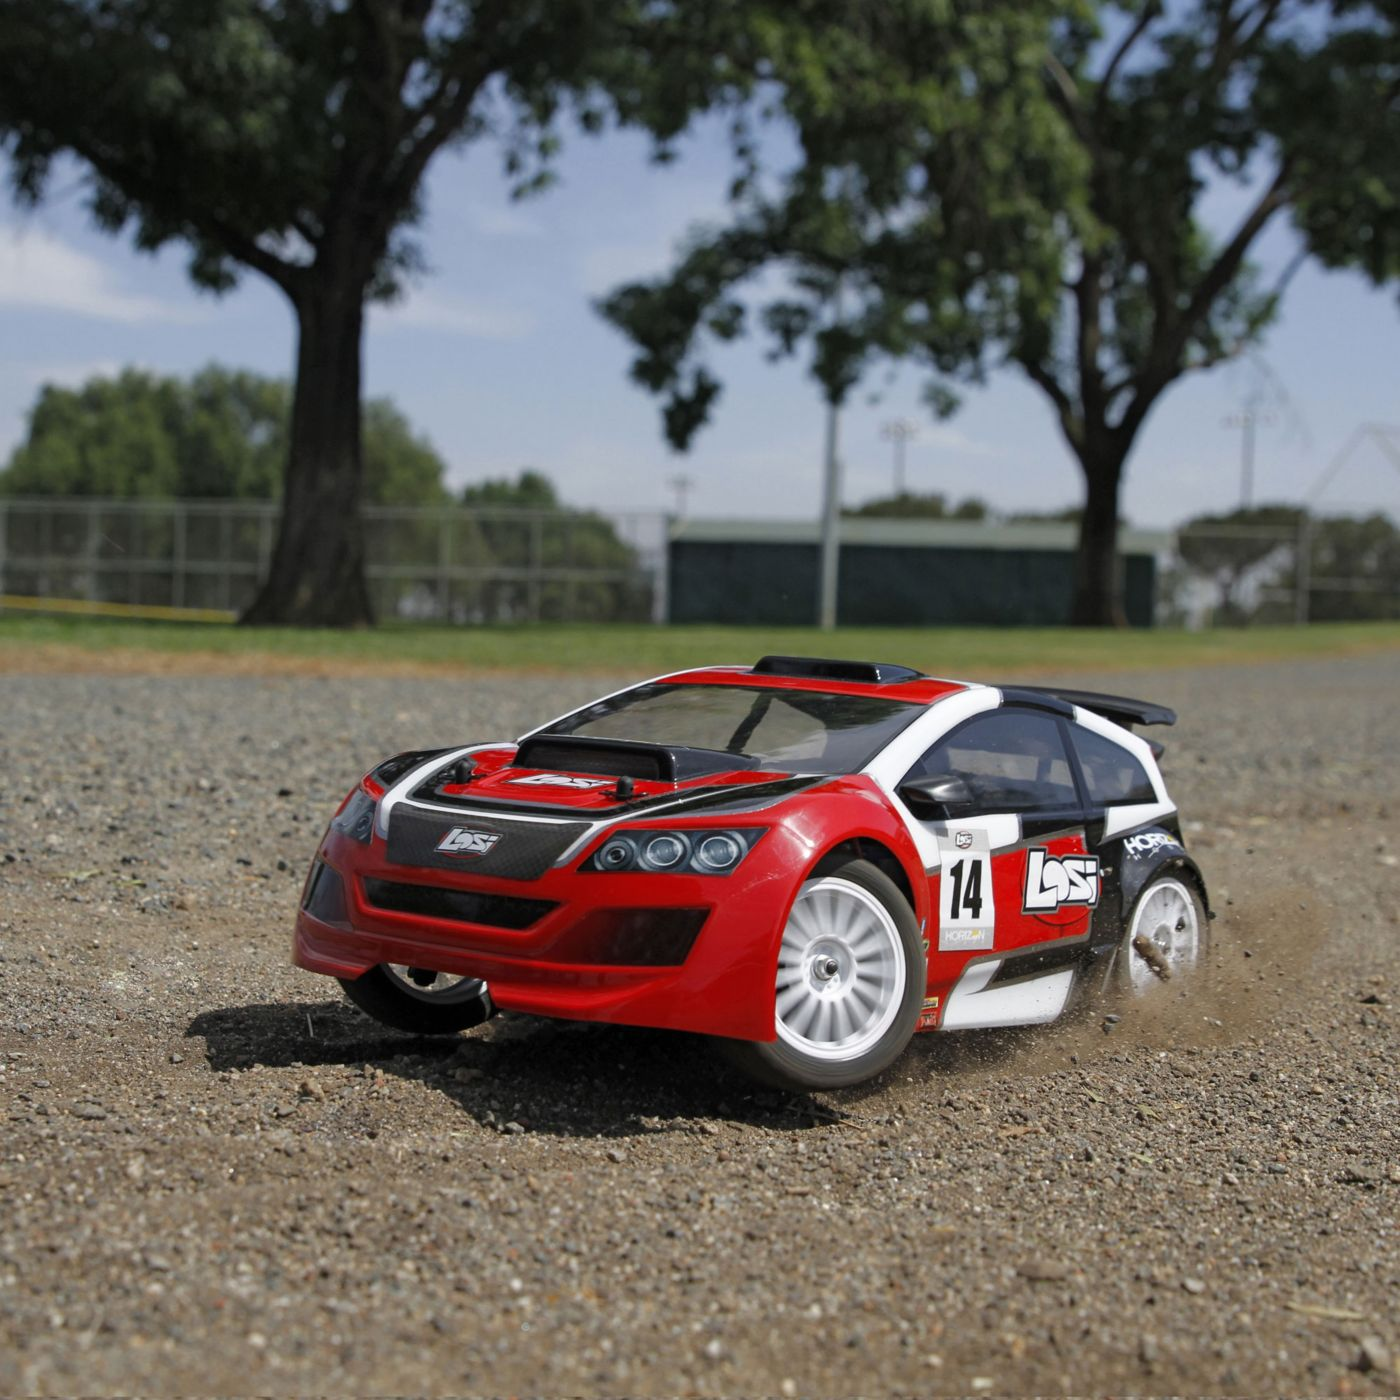 Losi Let's Loose with Their 1/14 Mini Rally 4WD